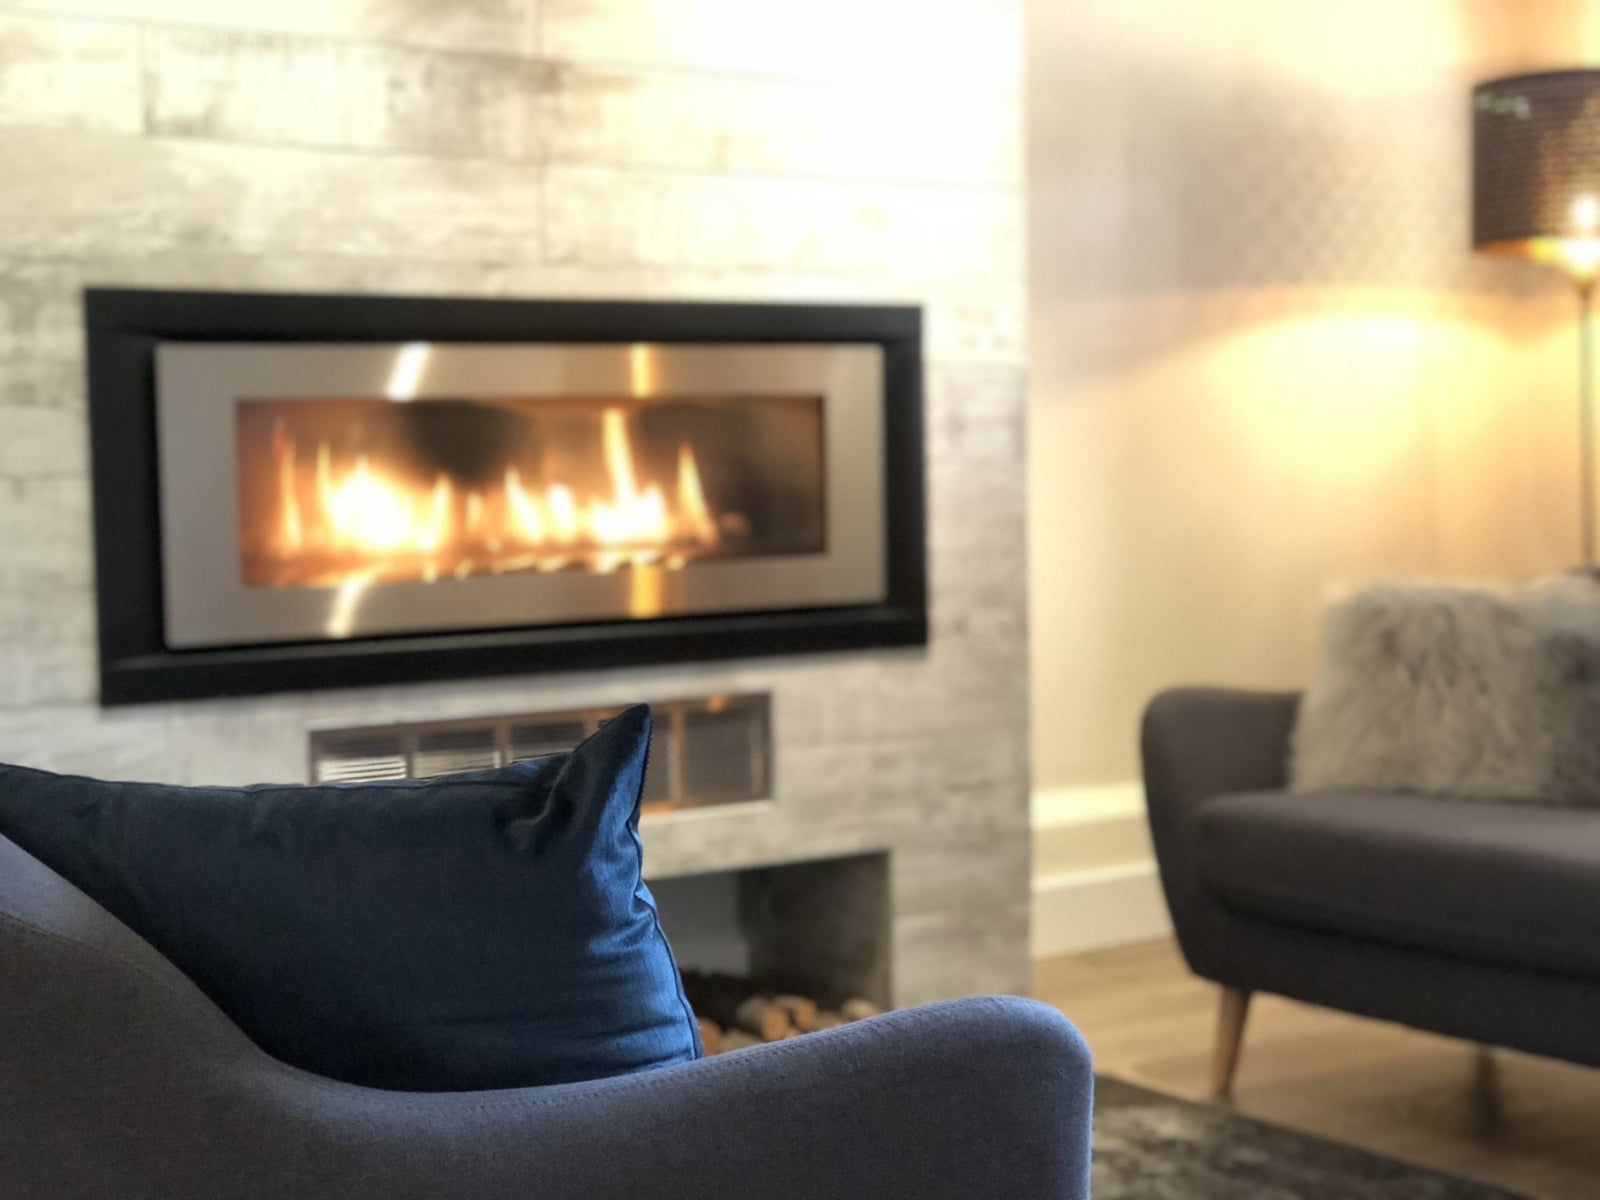 home systems fireplace white or logs your info absolutely hearth image comfort boulevard broilmaster in empire business mountain stunning grills look gas by would linear this